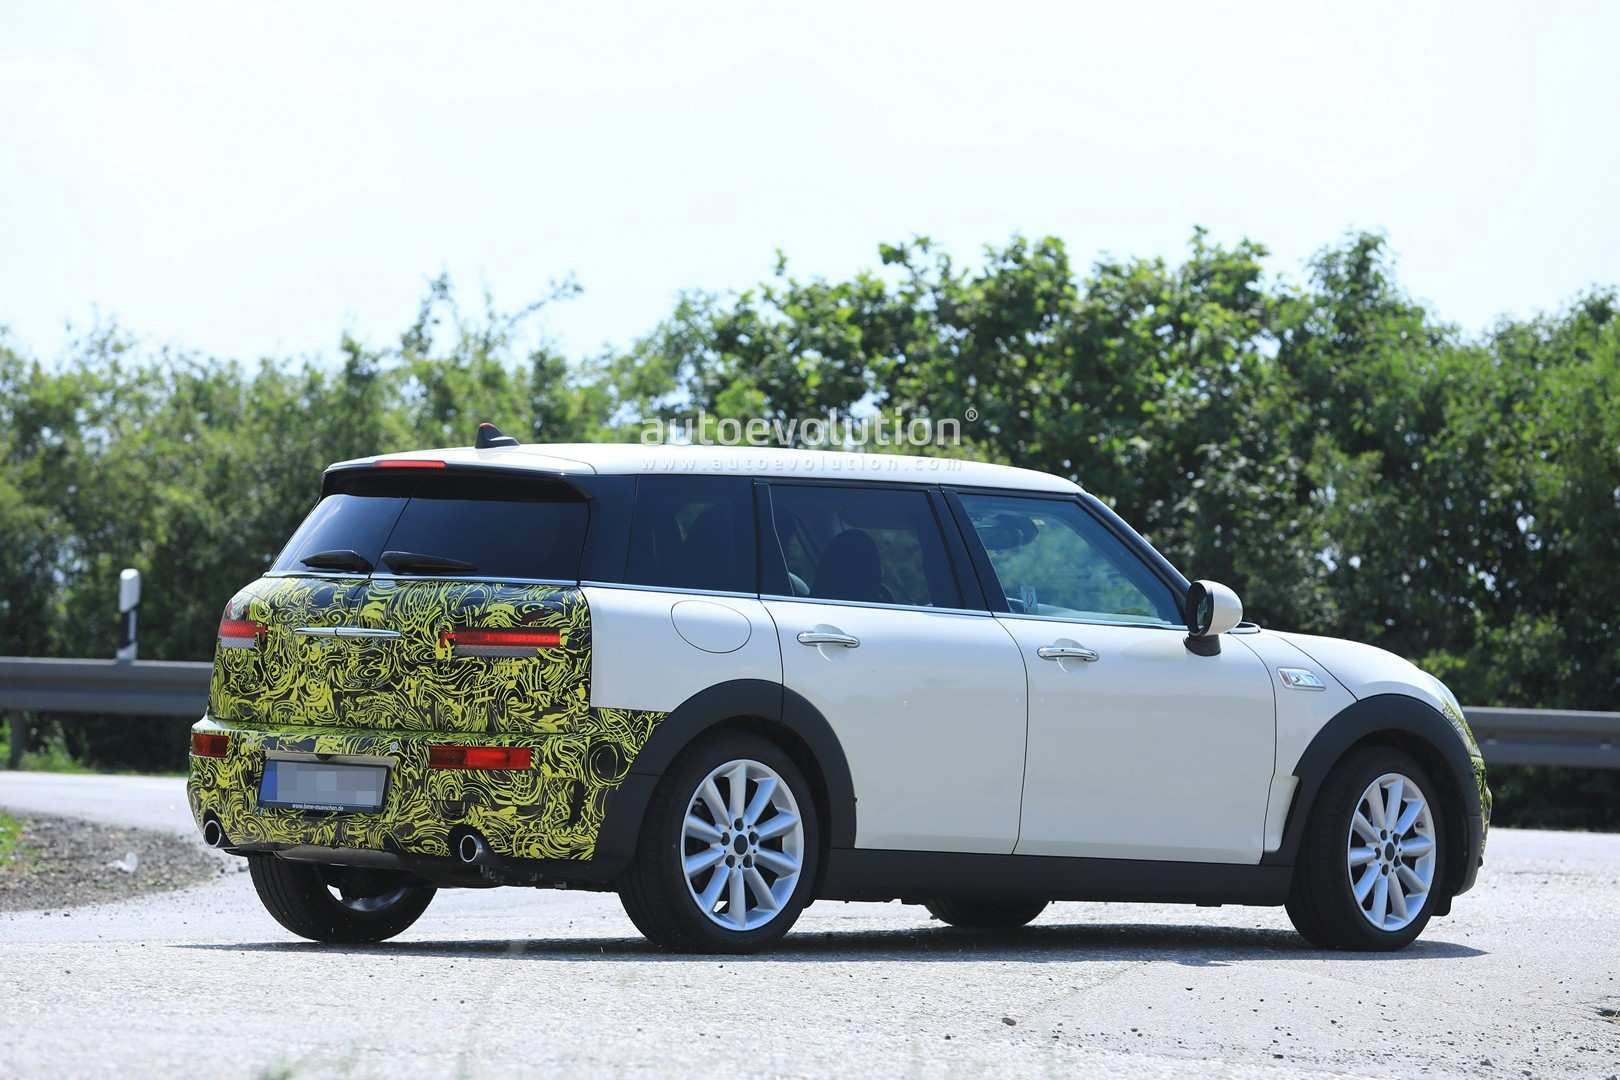 57 New Mini 2019 Facelift Redesign by Mini 2019 Facelift